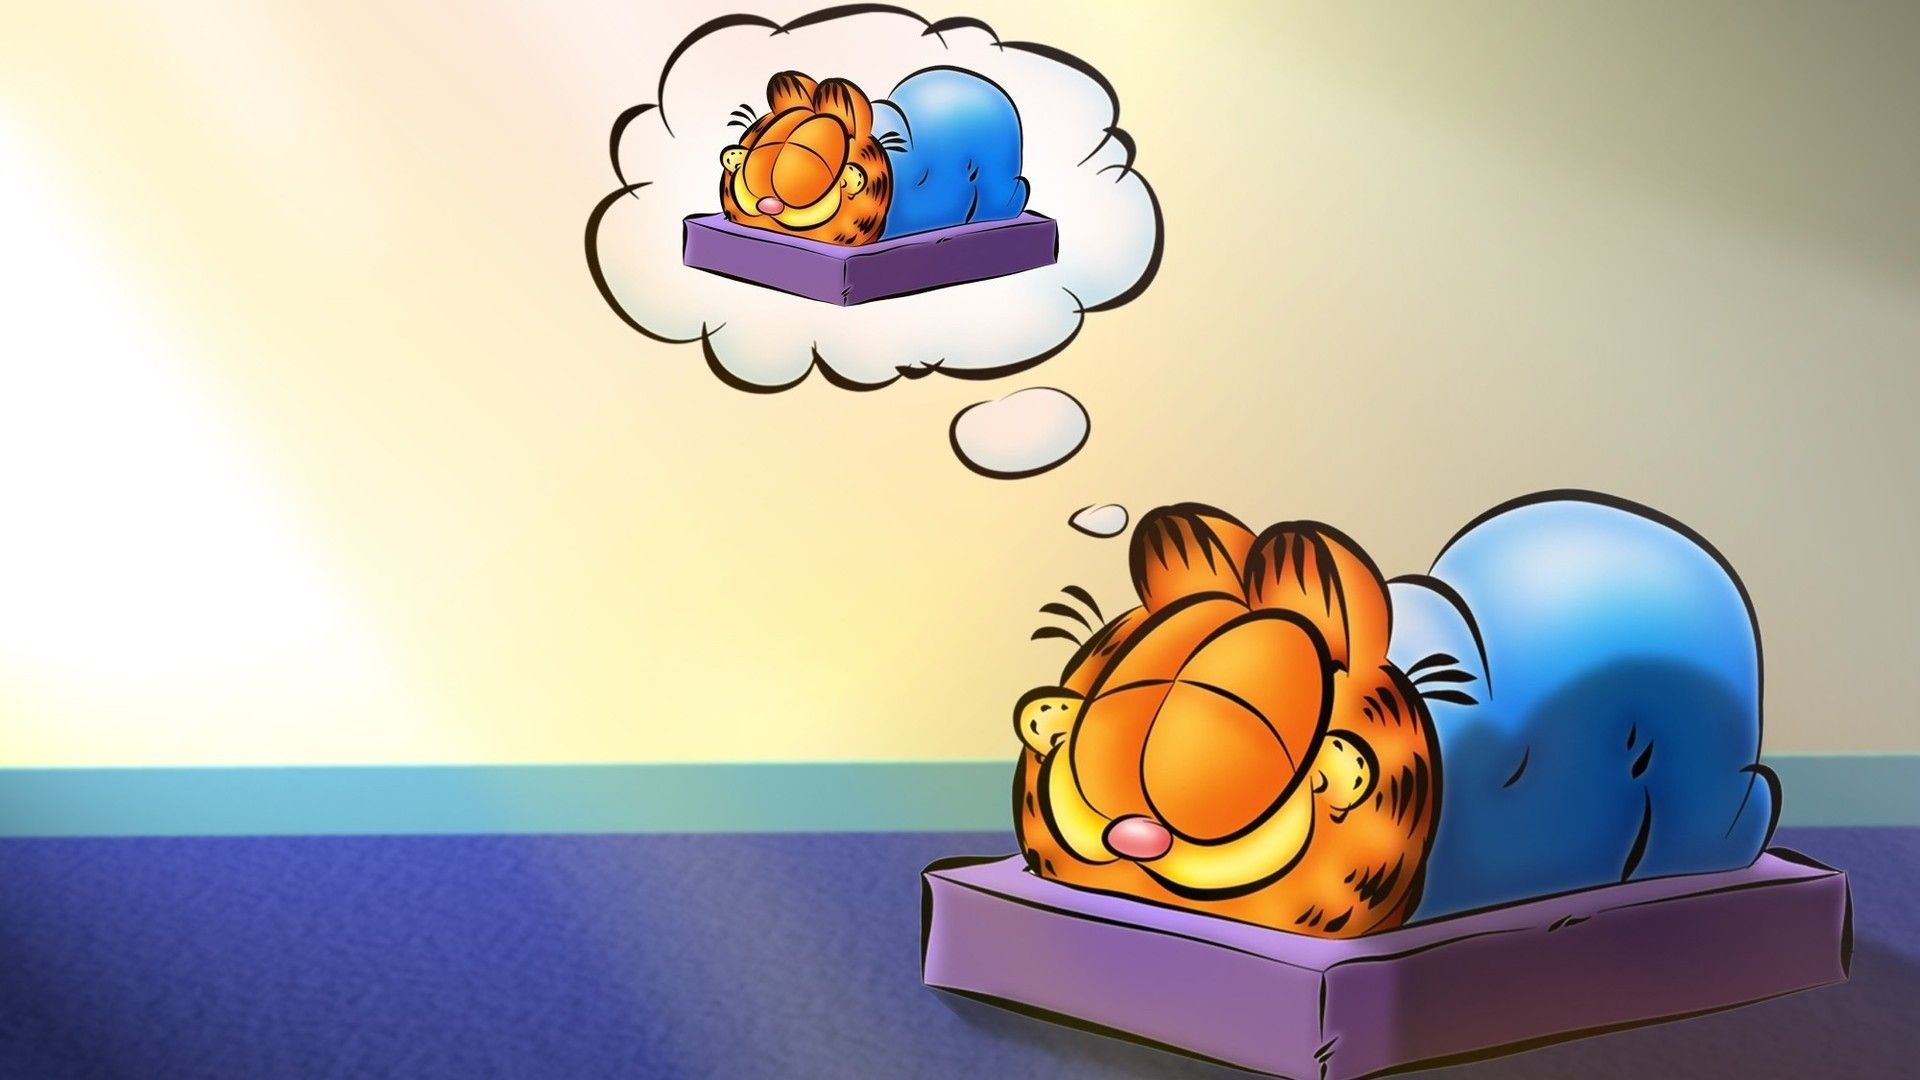 Garfield comics garfield wallpaper free for tablet garfield garfield comics garfield wallpaper free for tablet voltagebd Images